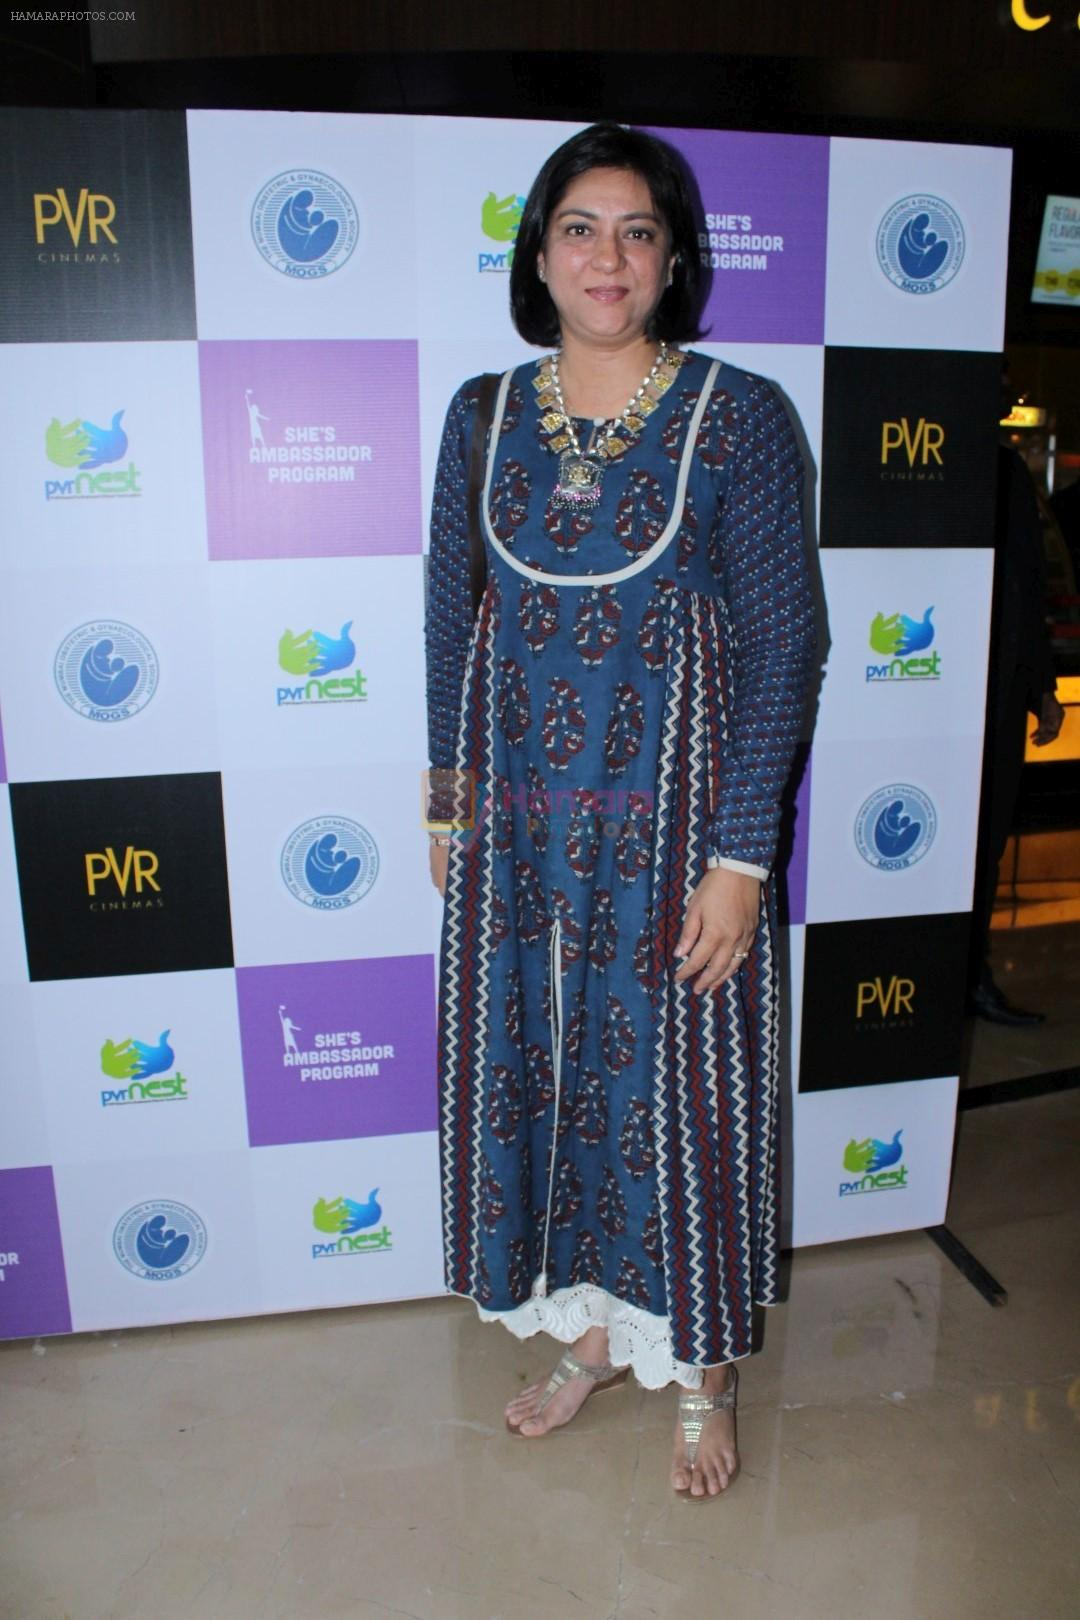 Priya Dutt at the Launch Of New Initiative She's Ambassador Program